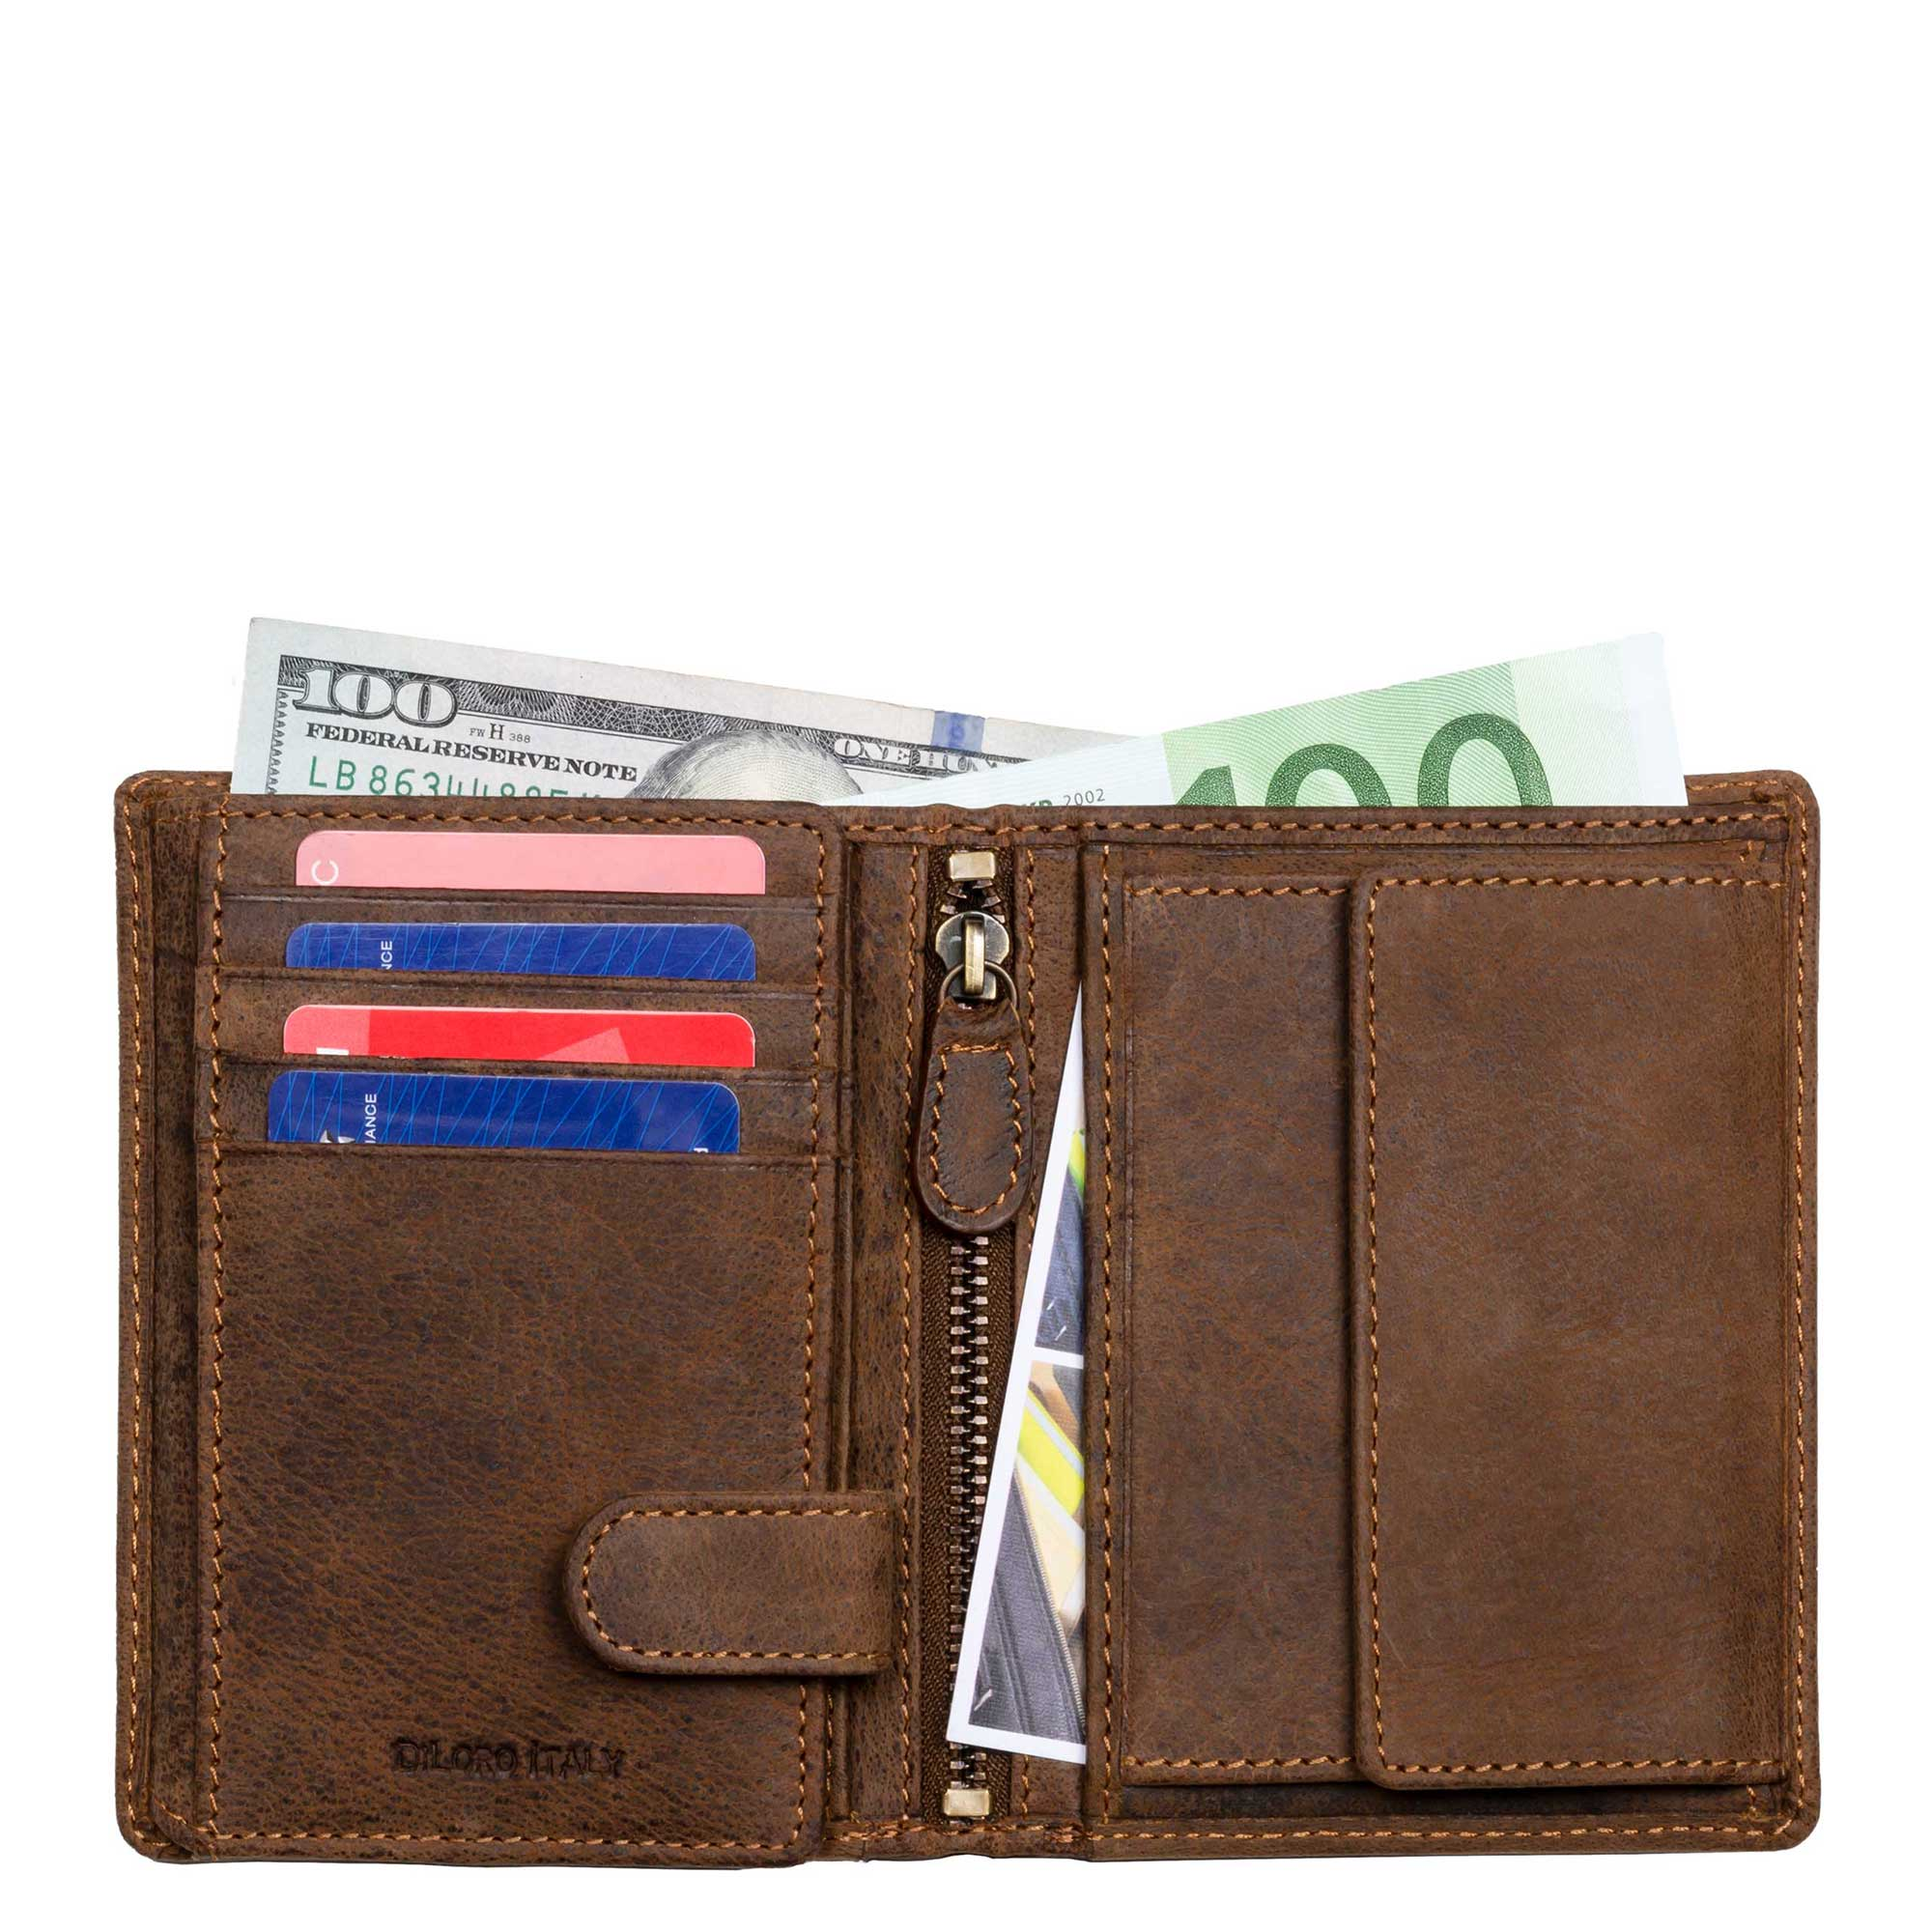 Fullsize to Minimalist Full Grain Leather Wallets by DiLoro Switzerland